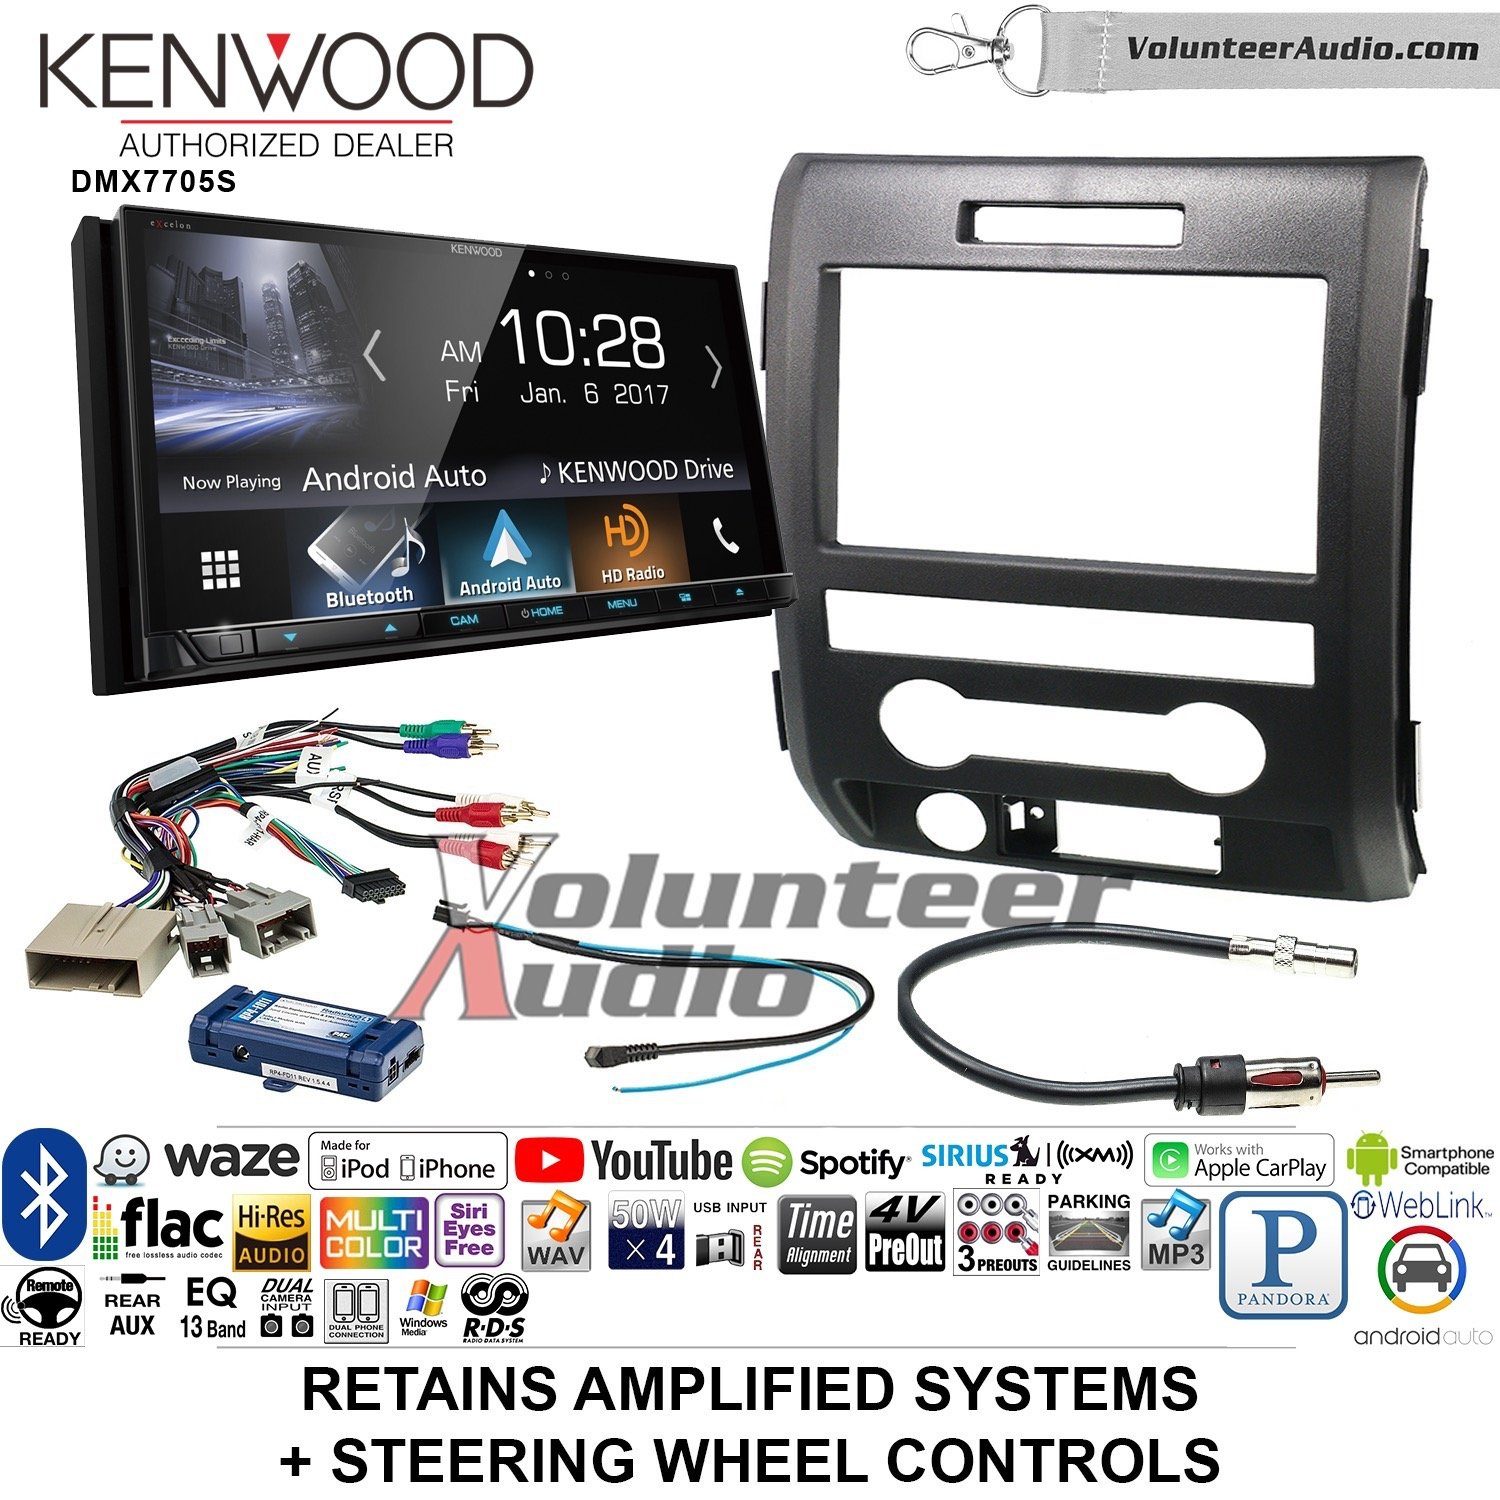 Volunteer Audio Kenwood DMX7705S Double Din Radio Install Kit with Apple CarPlay Android Auto Bluetooth Fits 2009-2014 F-150